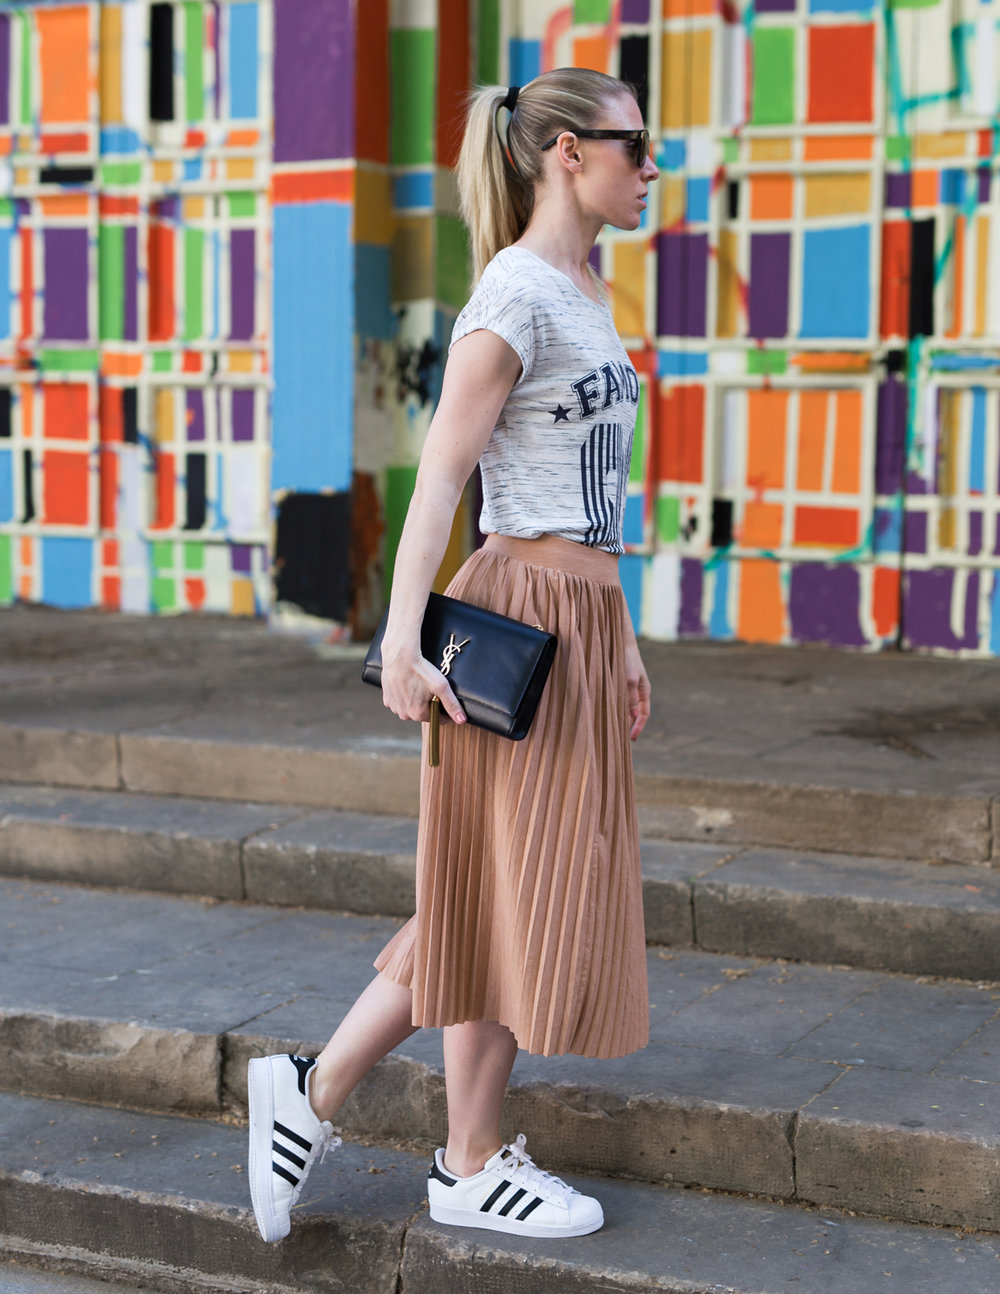 T-shirt - Noisy May. Skirt - Pull&Bear. Shoes - Adidas. Bag - Yves Saint Laurent. Shades - Yves Saint Laurent